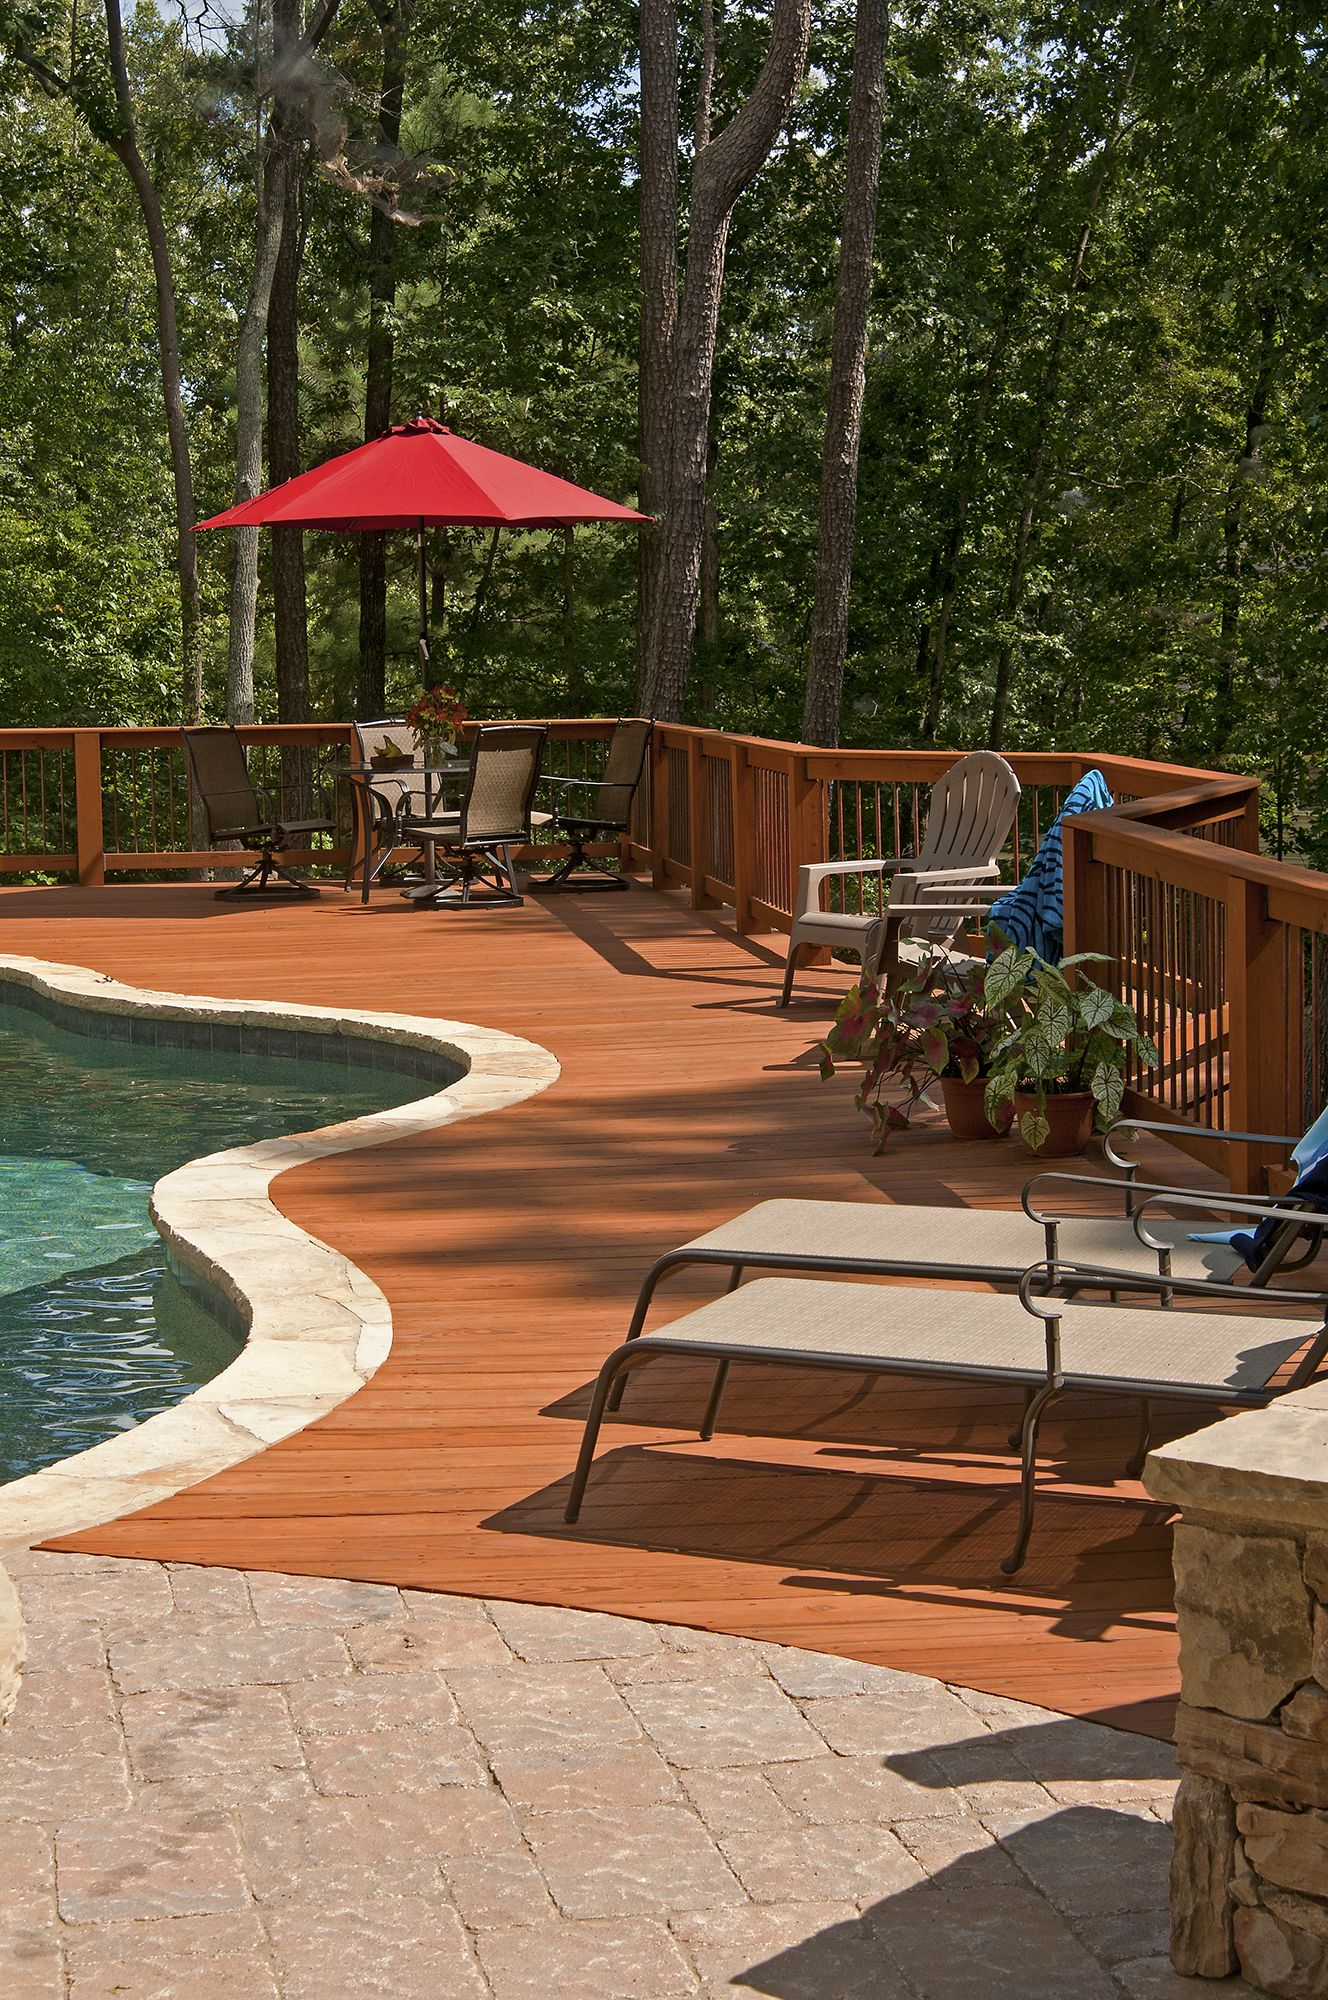 Wood Deck Adjoining An Inground Pool Designed And Built By Atlanta Decking Inground Pool Landscaping Wood Pool Deck Decks Around Pools